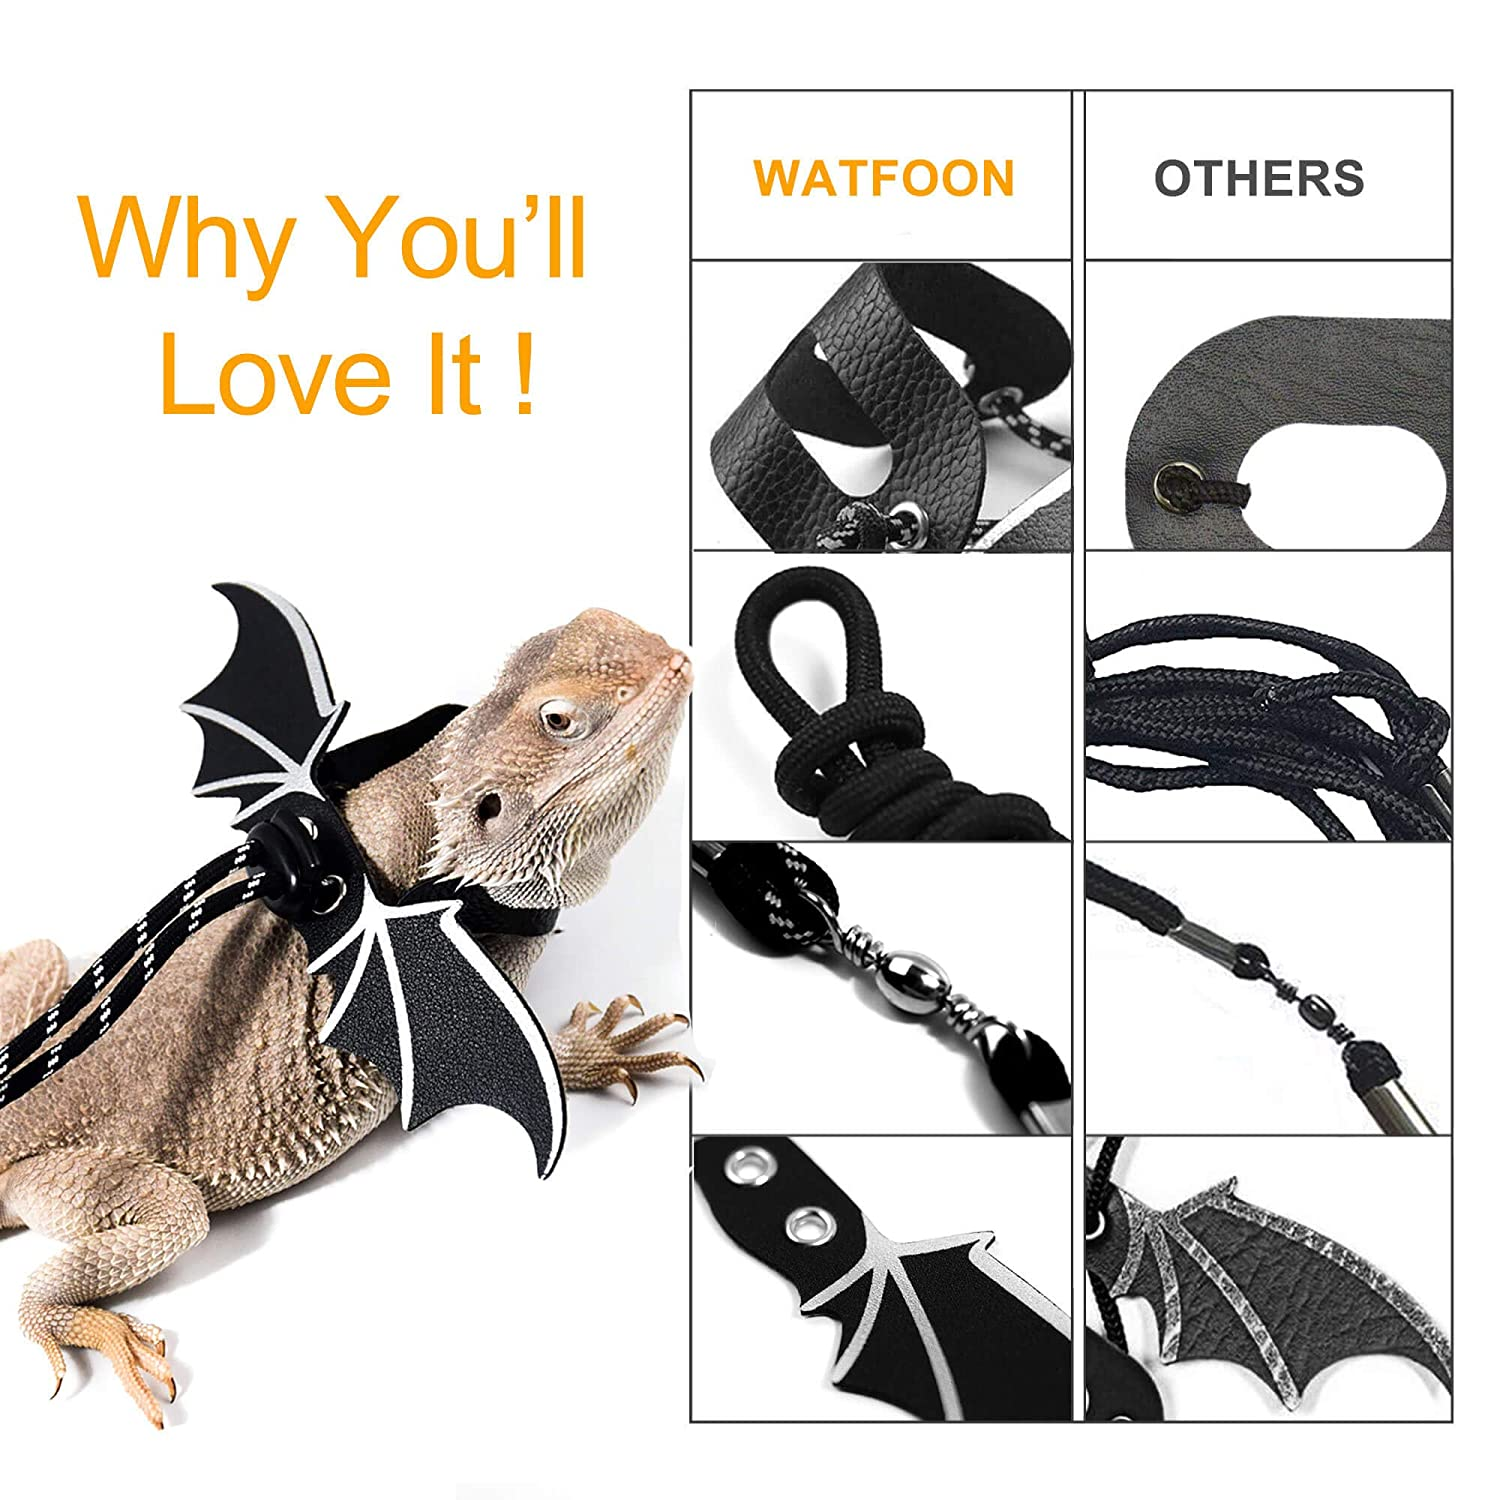 Great for Lizard Chameleon Gecko Guinea Pig Ferrets Hamster Rats Walking /& Training WATFOON Comfort Reptile Harness with Cool Wings Adjustable Handmade Lead